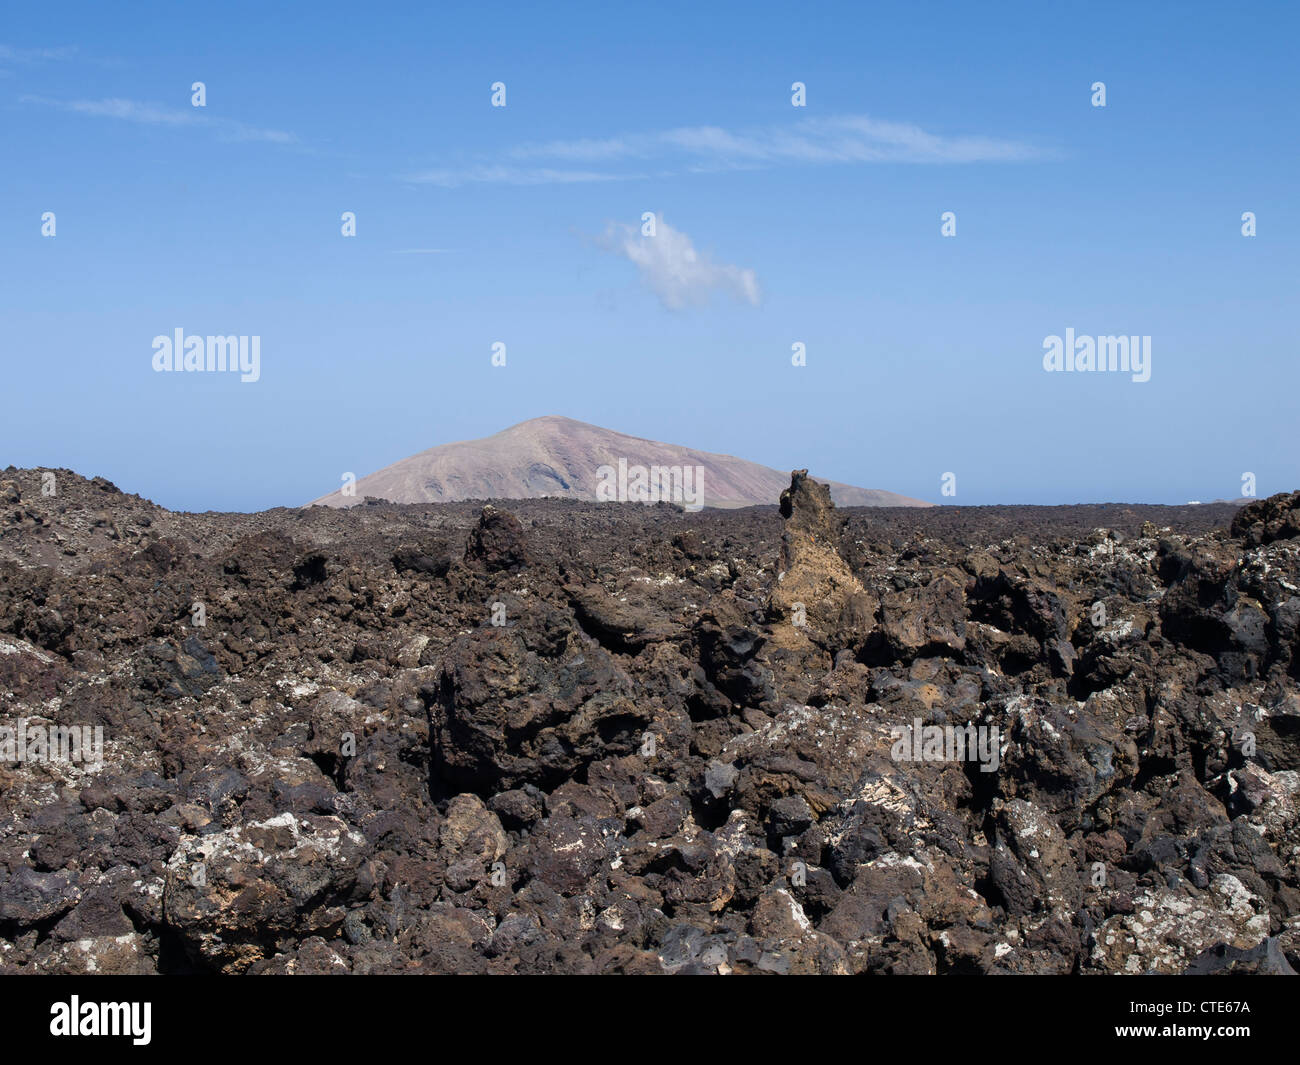 Lava-field with sharp uneven rocks and an old volcano in the background near Timanfaya in Lanzarote - Stock Image